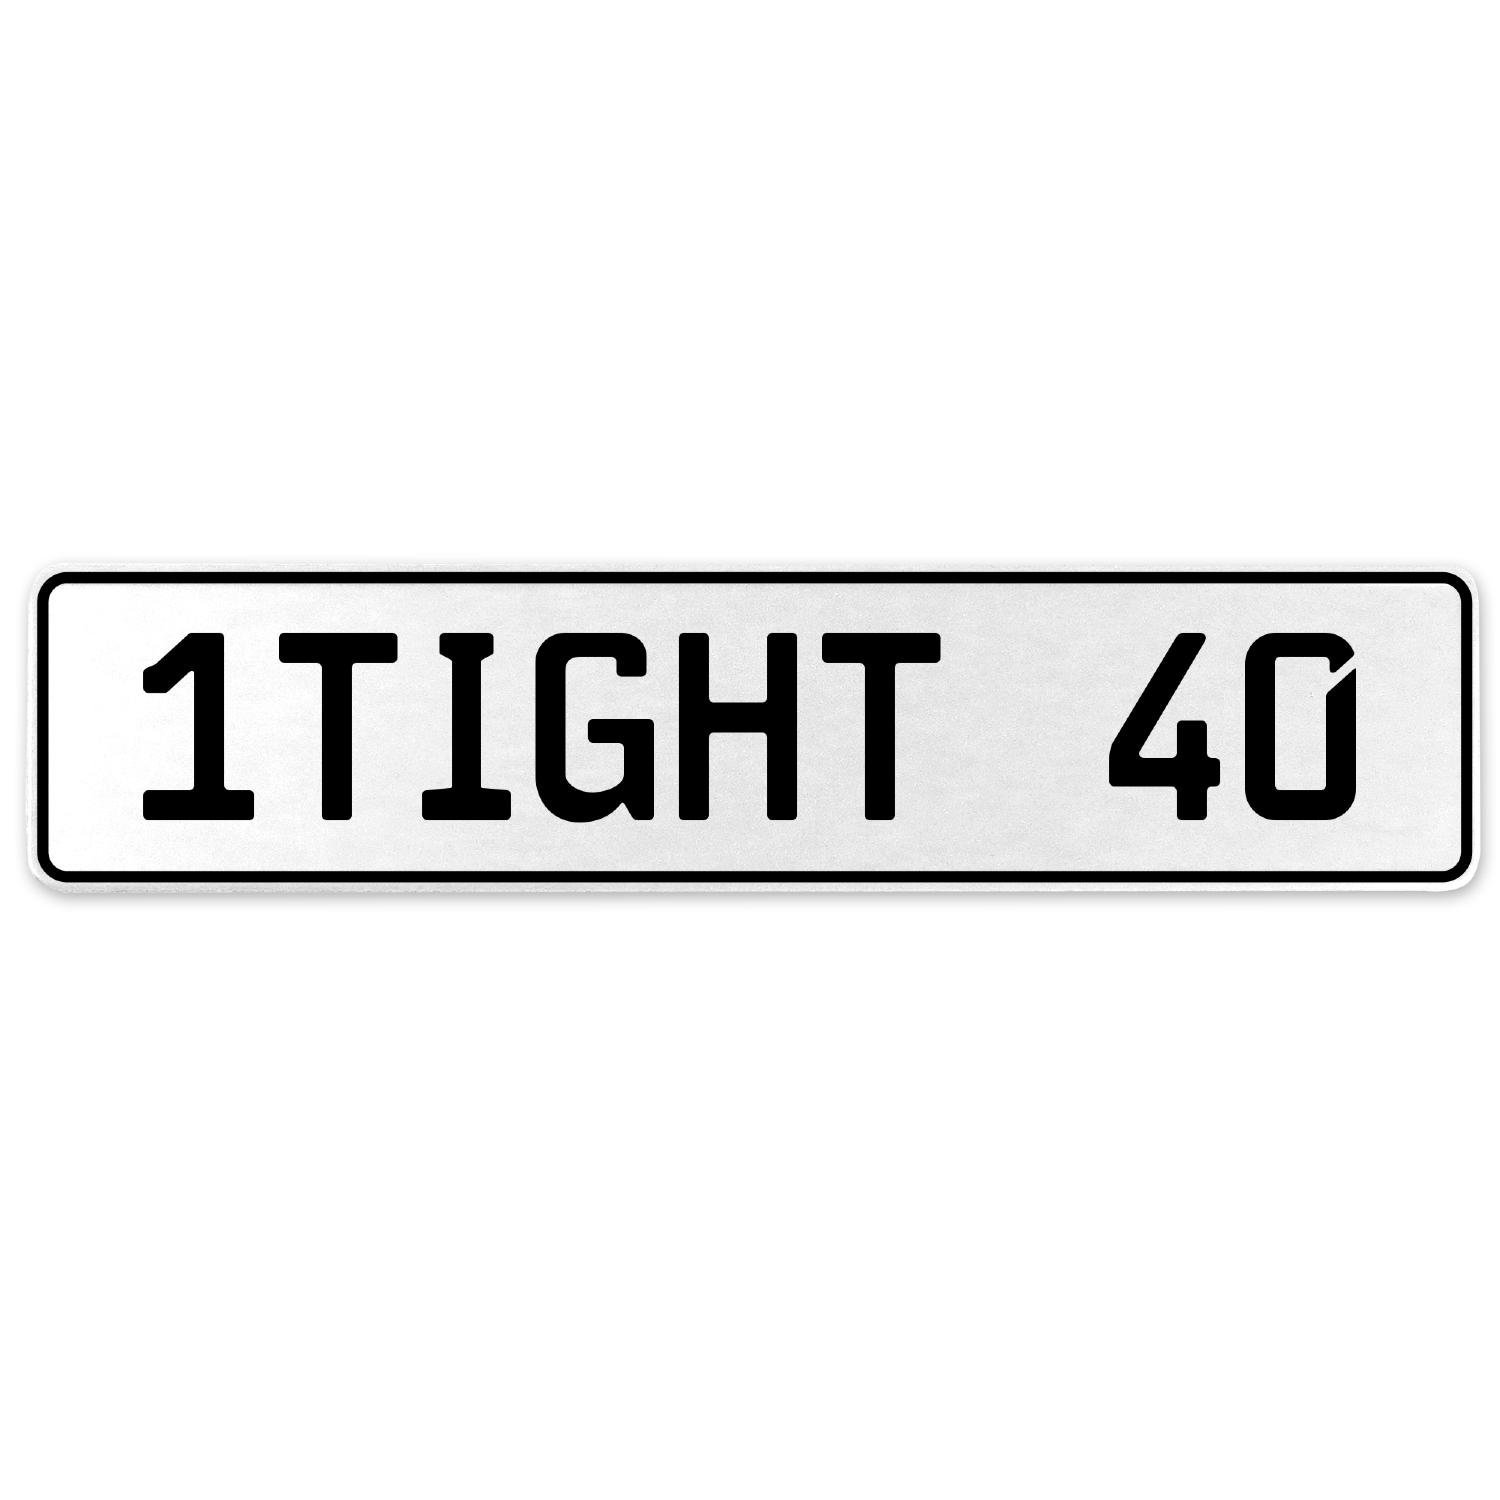 Vintage Parts 554835 1TIGHT 40 White Stamped Aluminum European License Plate